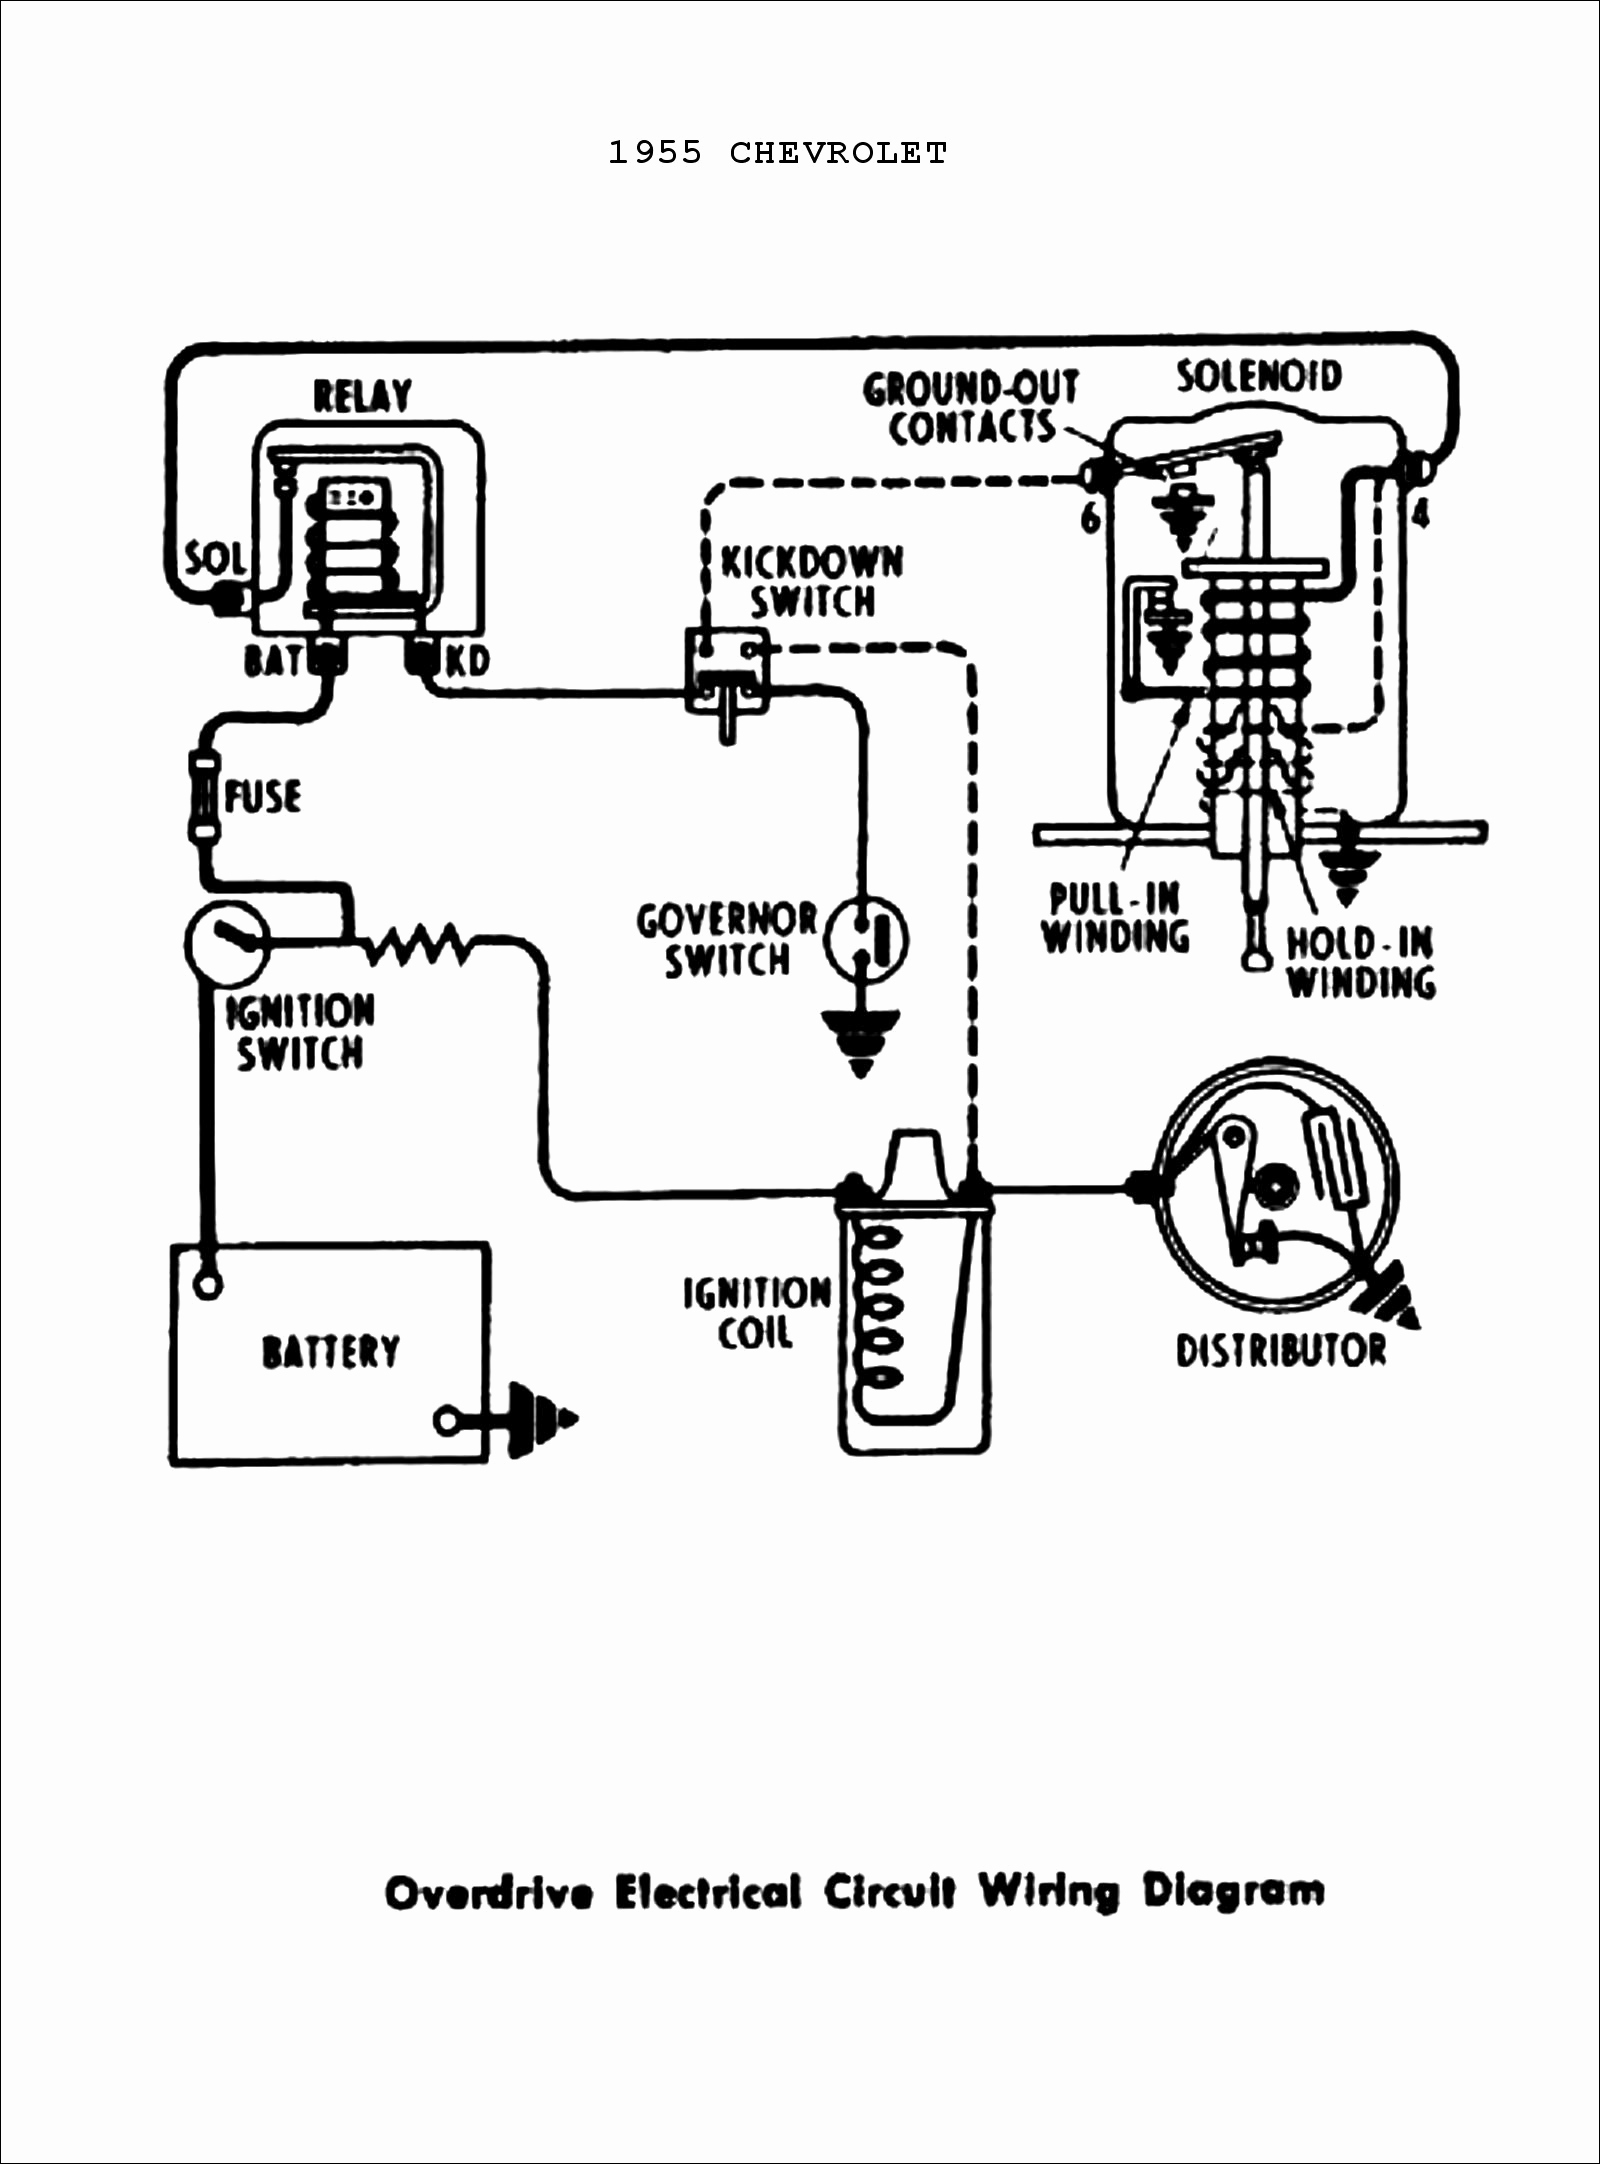 17657 turn signal switch wiring diagram